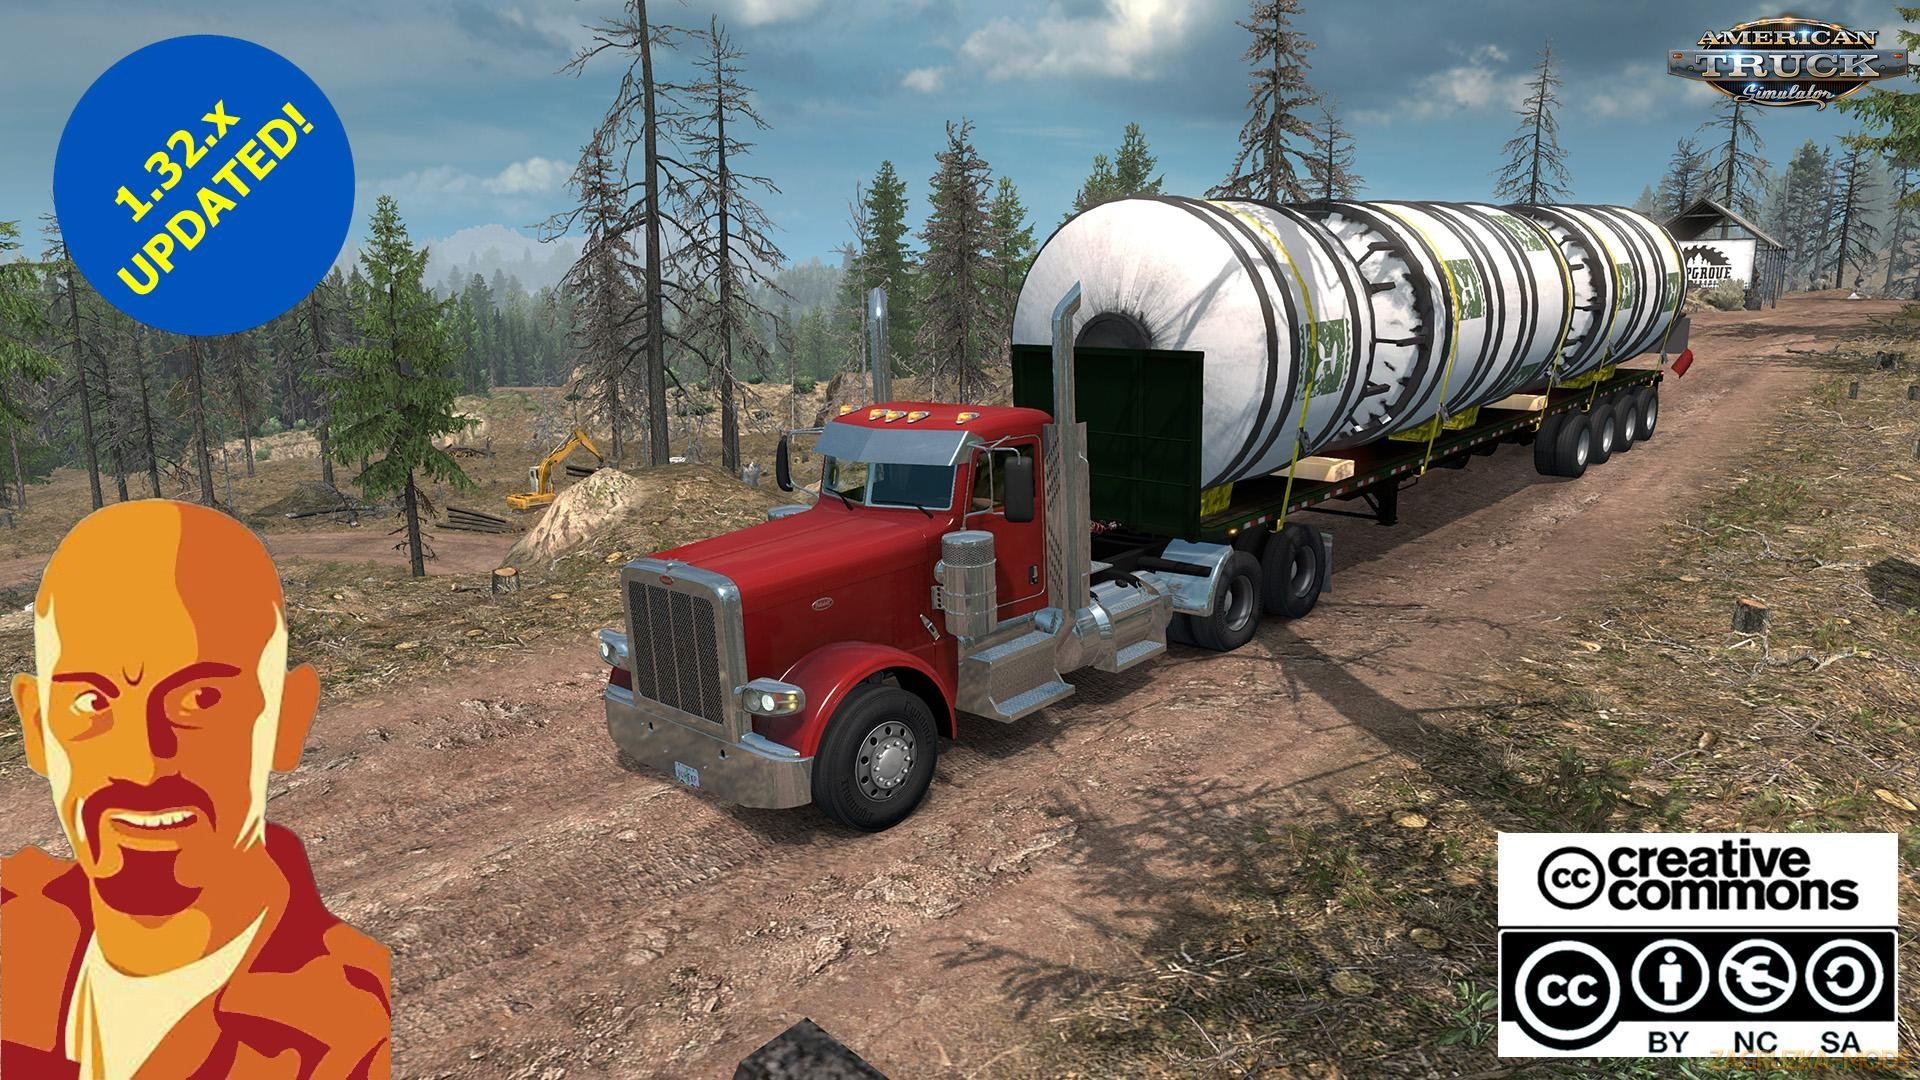 Oversize Overweight Trailers U.S.A. v1.0 (Fixed) (1.33.x) for ATS